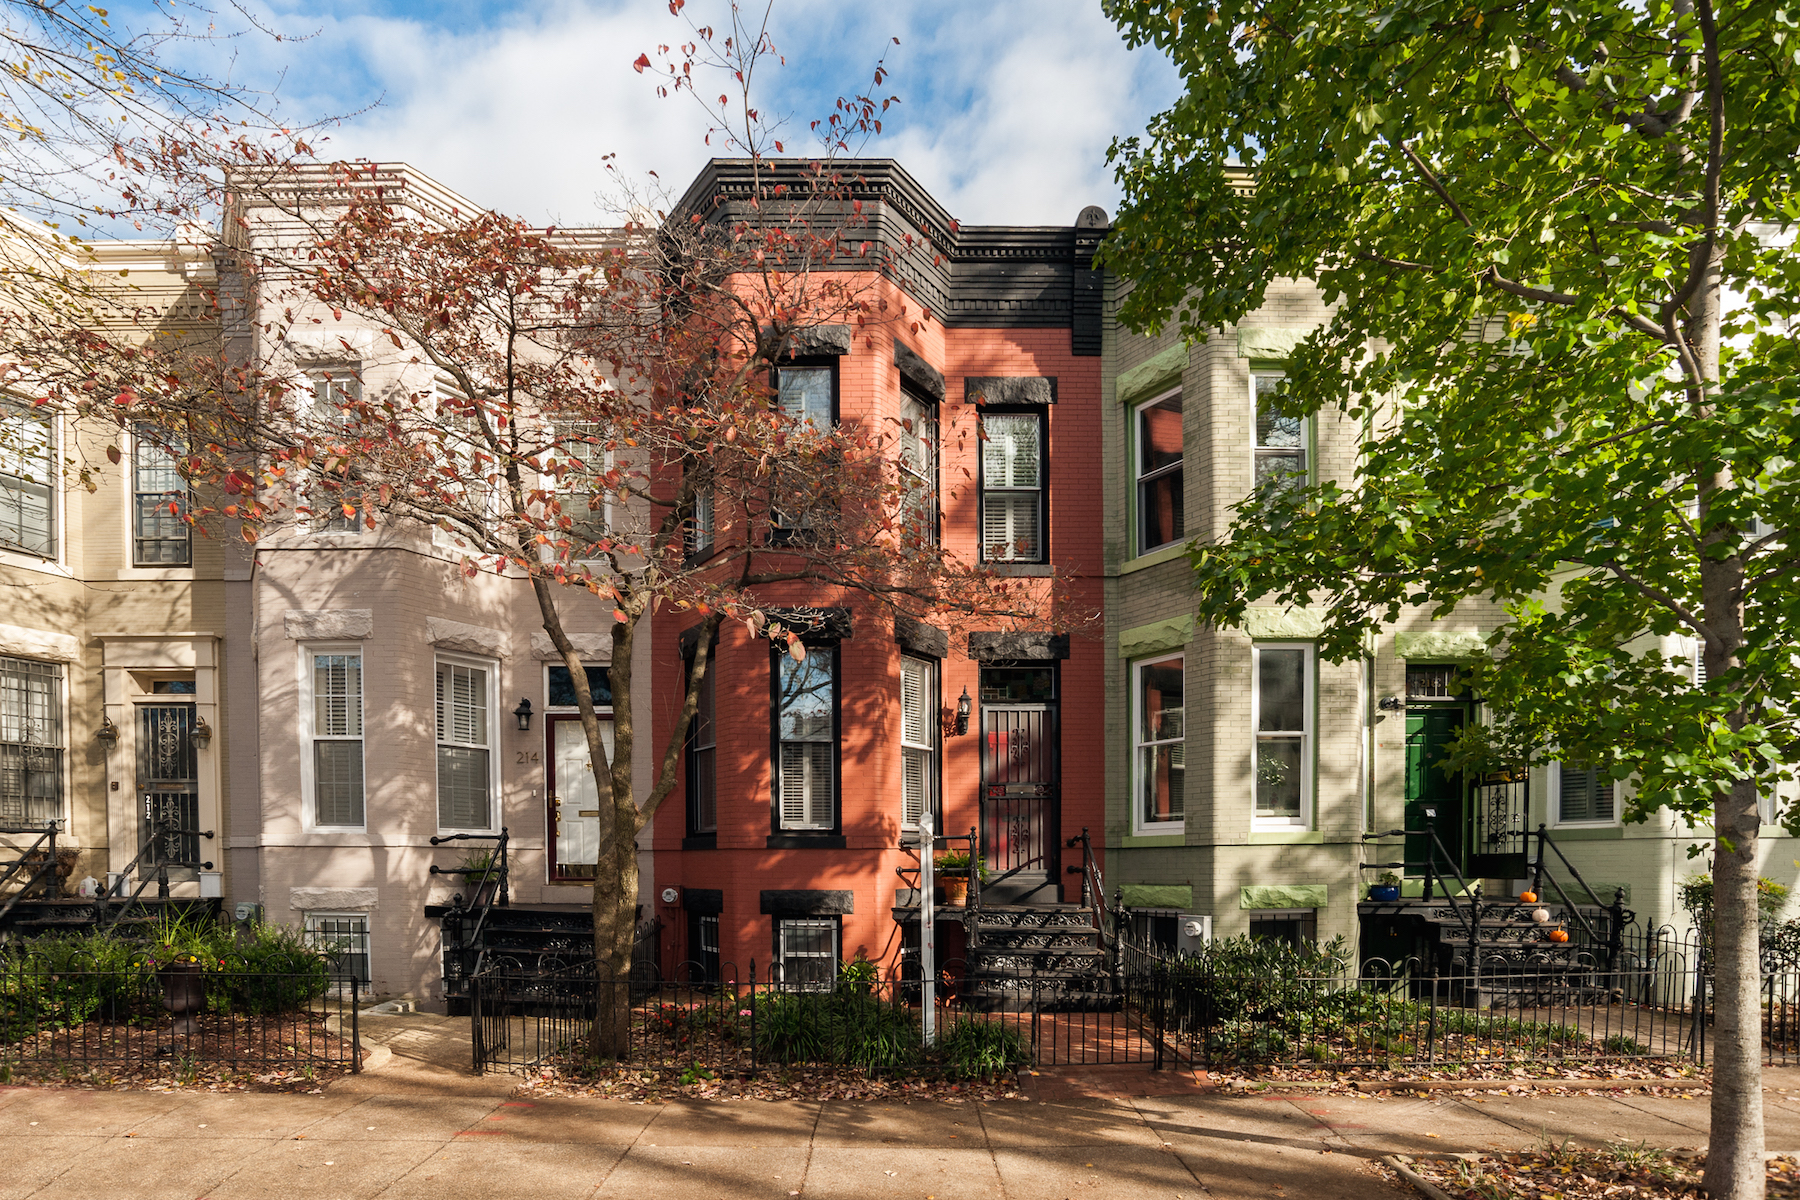 Townhouse for Sale at Capitol Hill, Washington DC 216 10th Street Se Washington, District Of Columbia 20003 United States